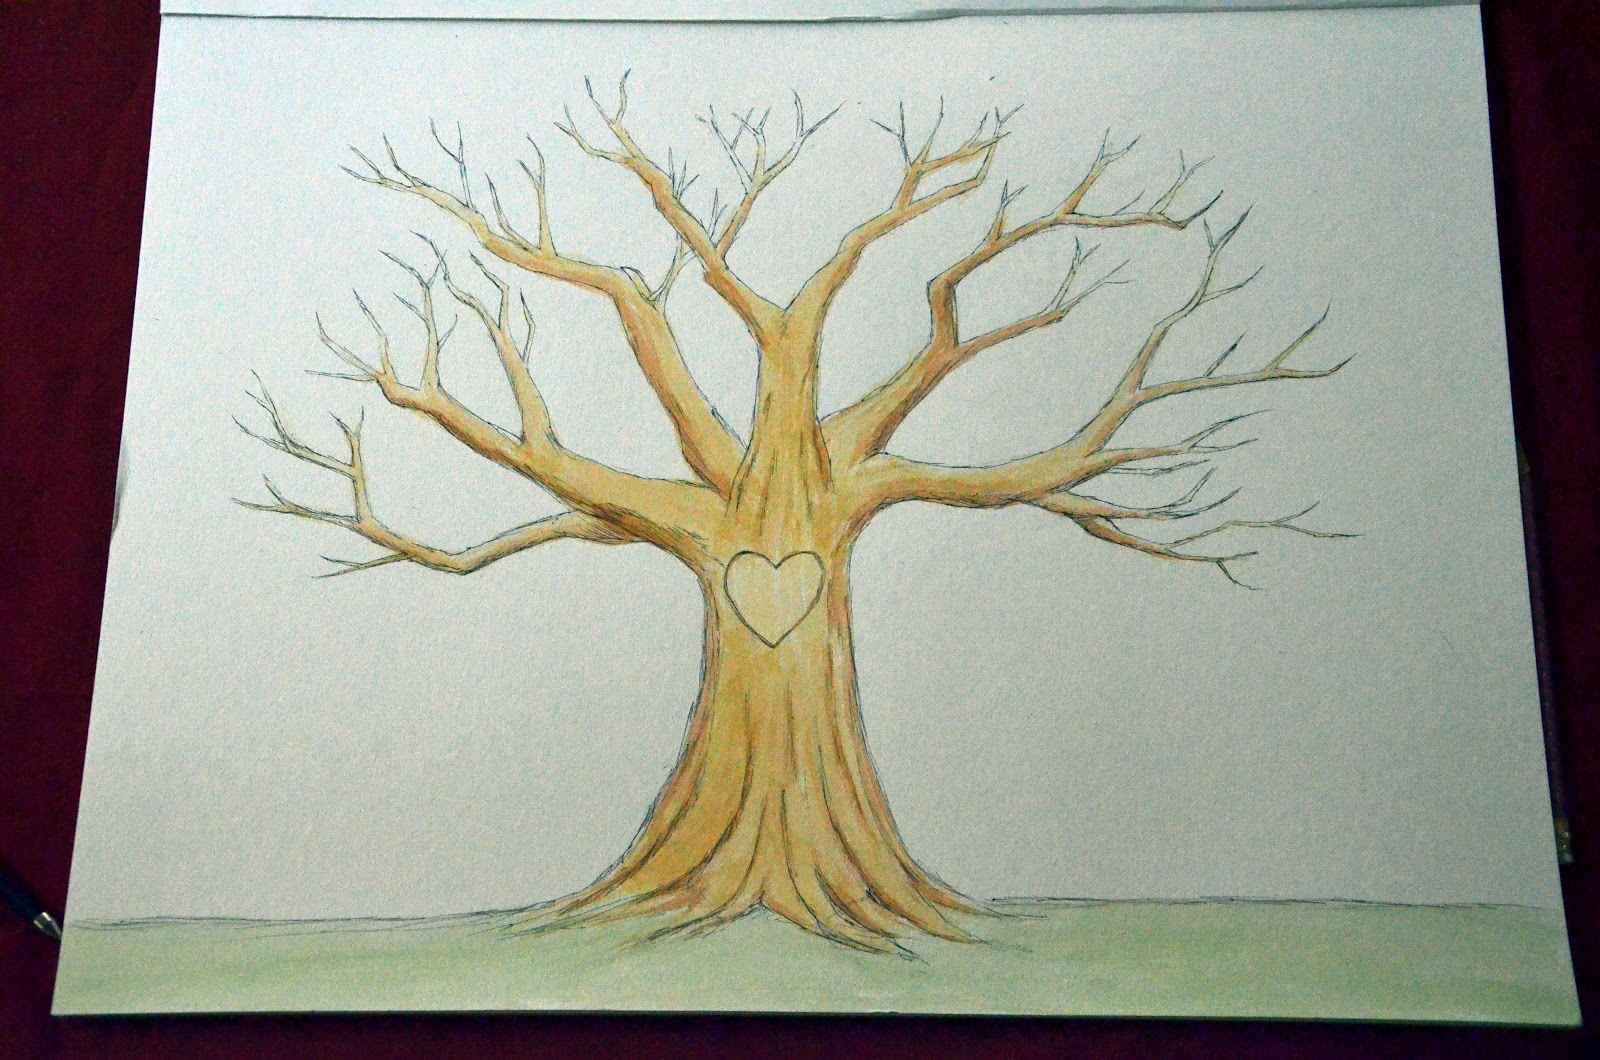 Gallery For gt Easy Tree Drawings Without Leaves